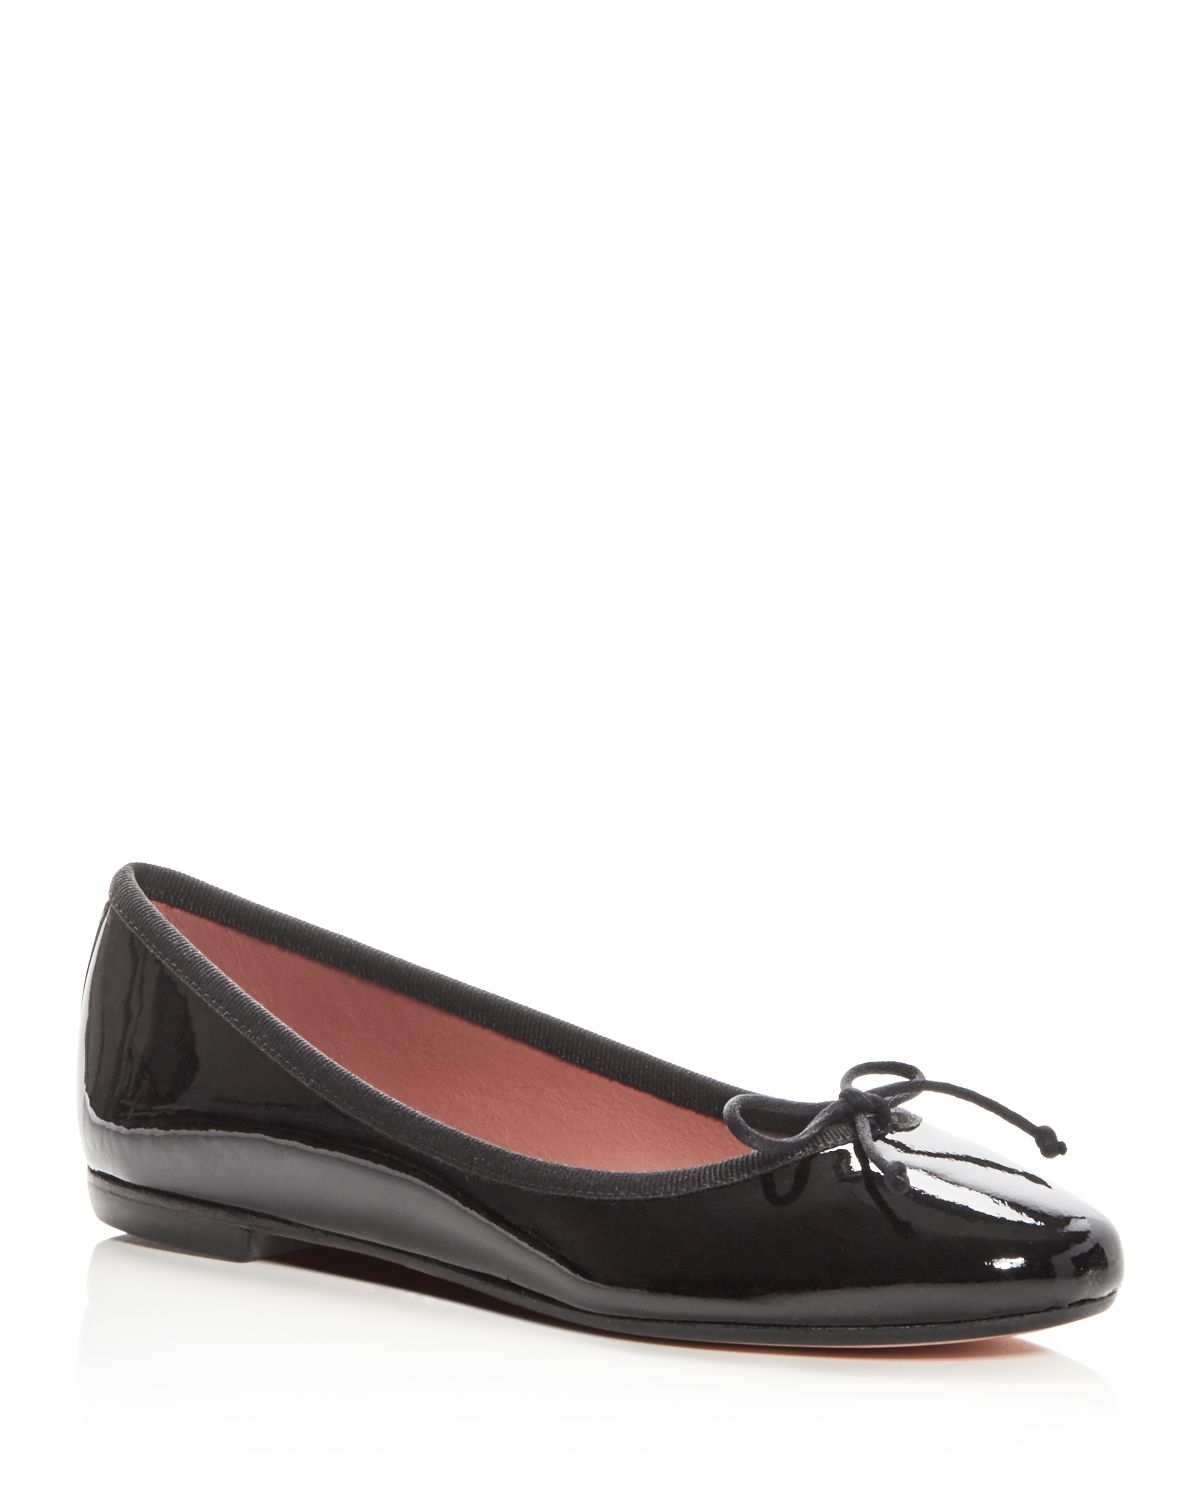 Bloomingdale's Women's Kacey Italian Leather Ballet Flats - 100% Exclusive